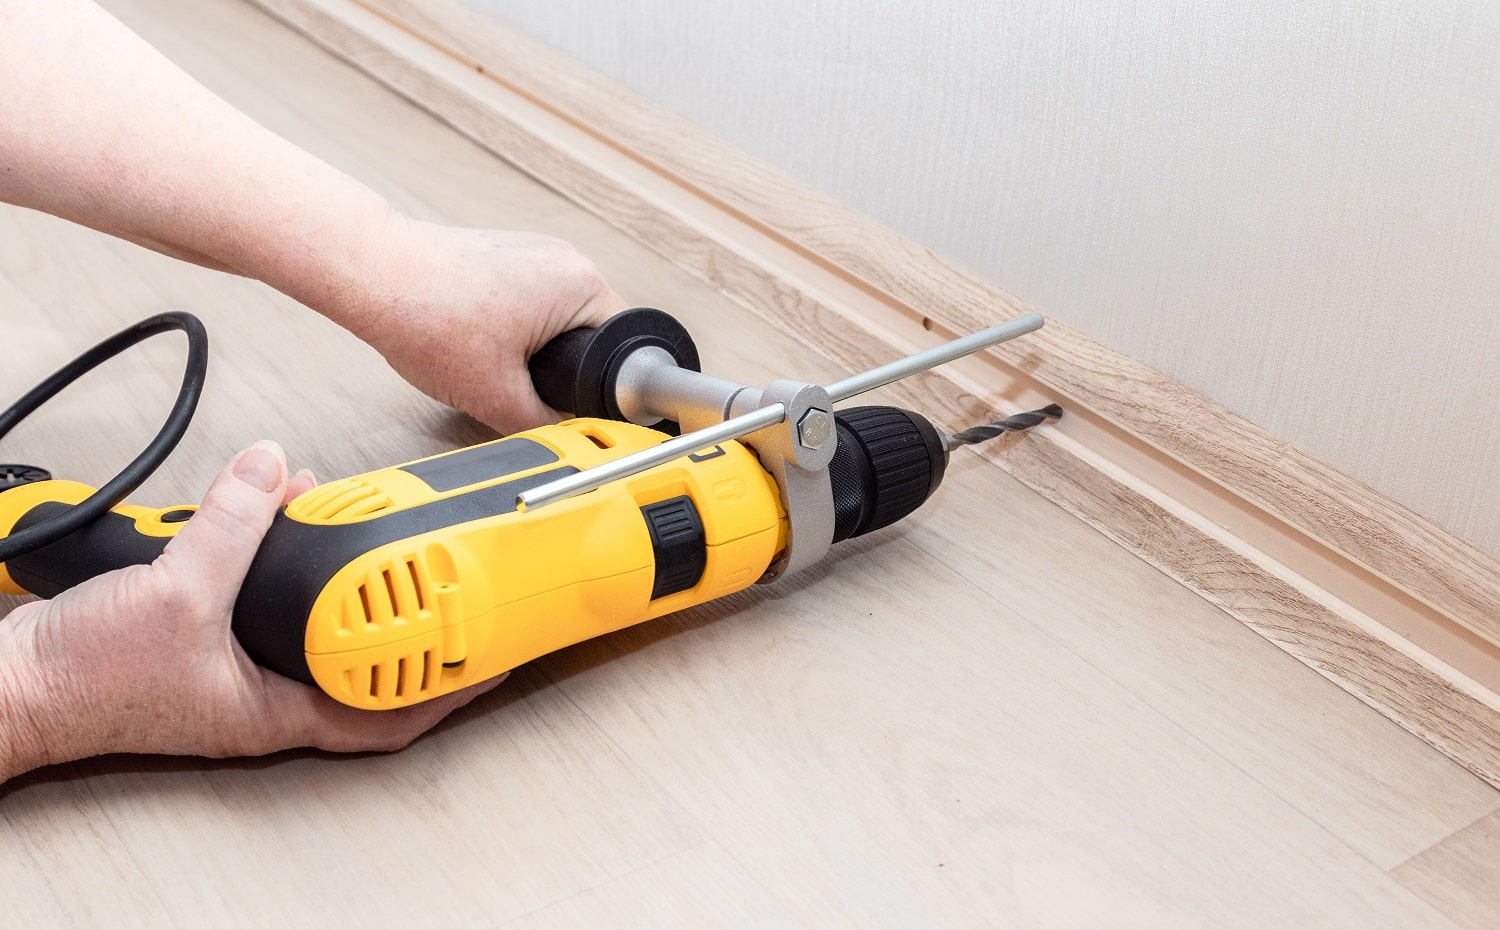 Female hands hold a heavy drill tool and make a hole in the wall for attaching the baseboard. Home repairs. Feminism